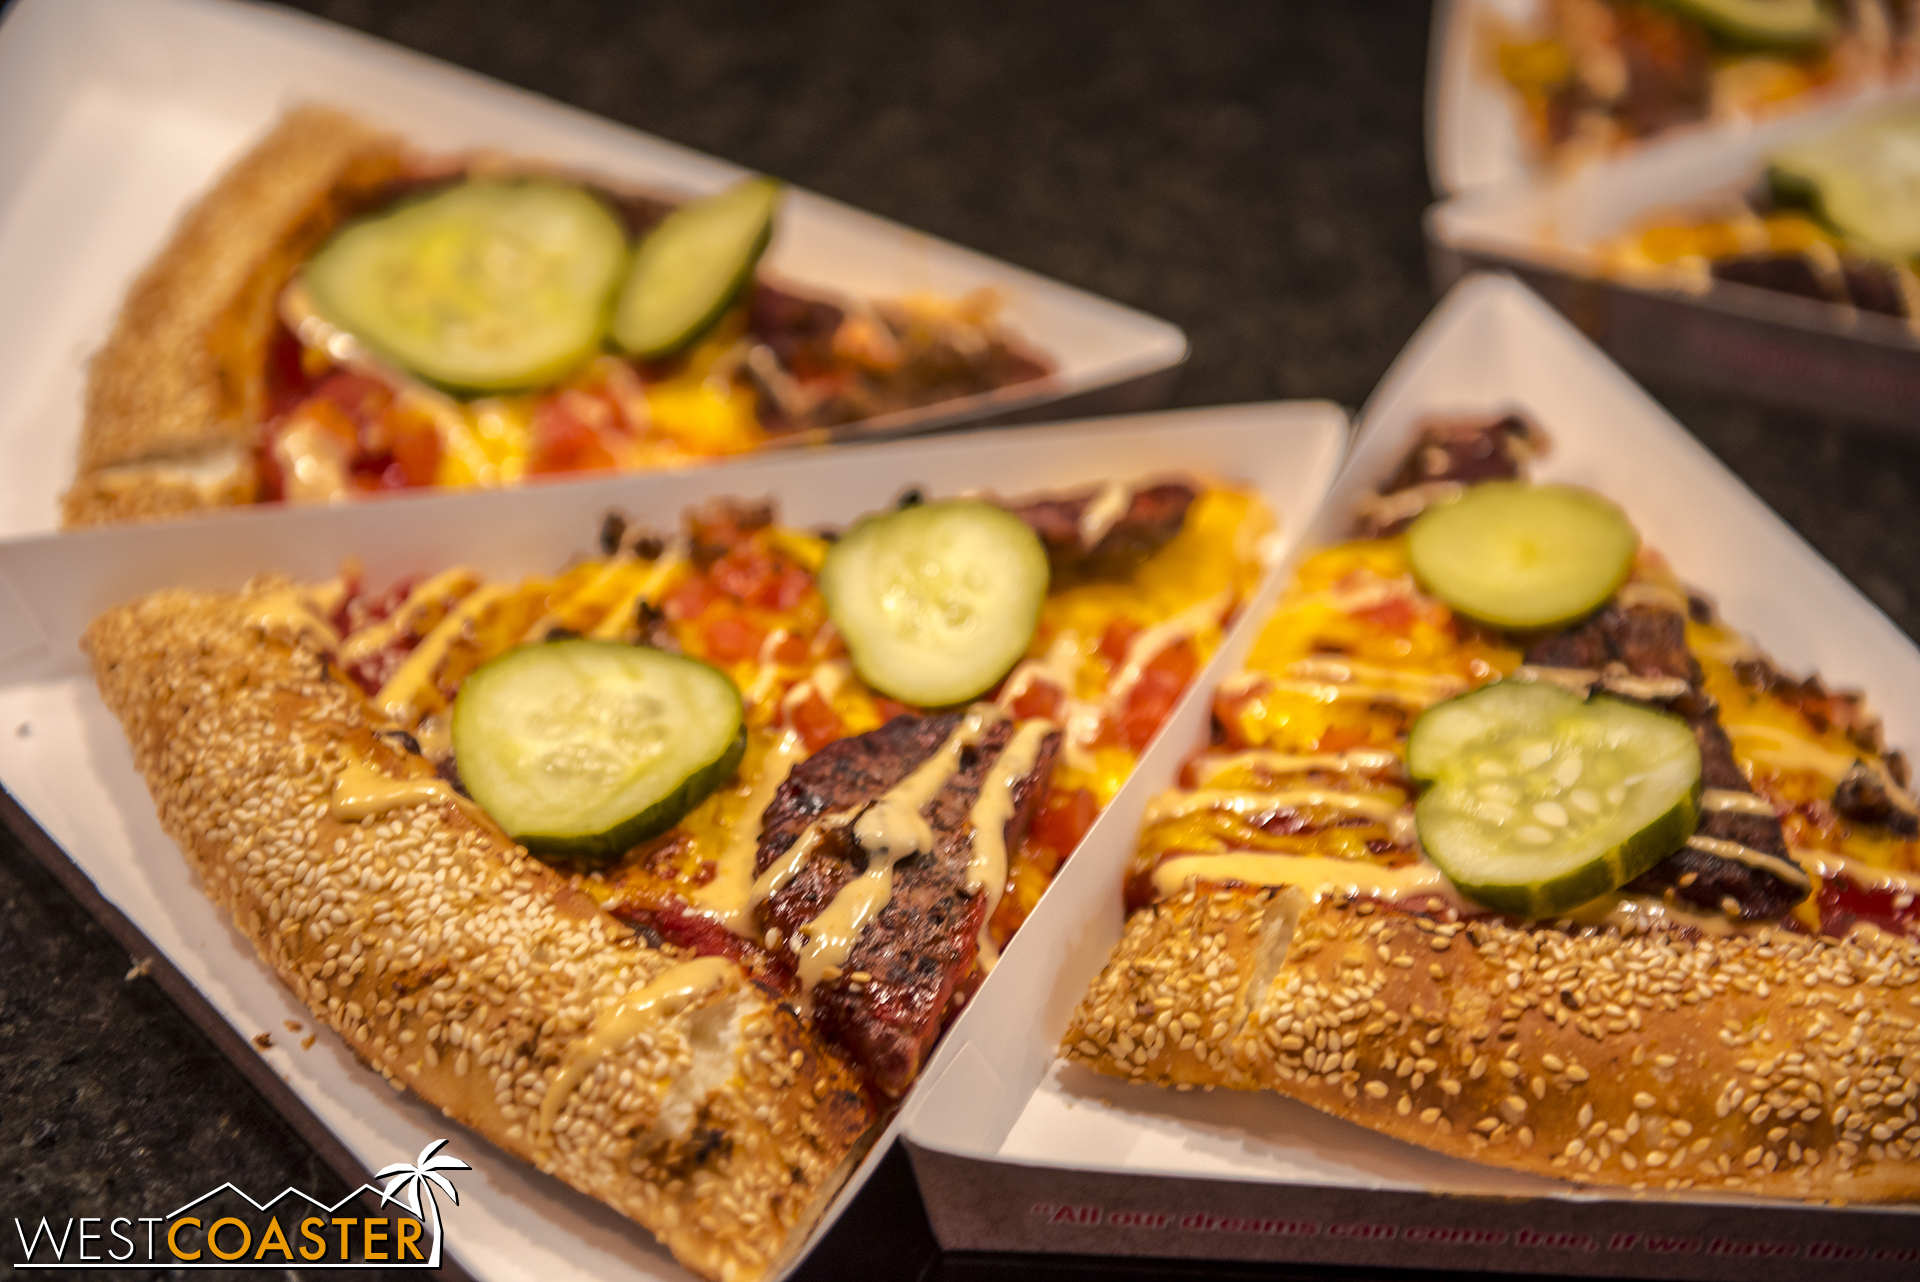 There's also a Cheeseburger Pizza.